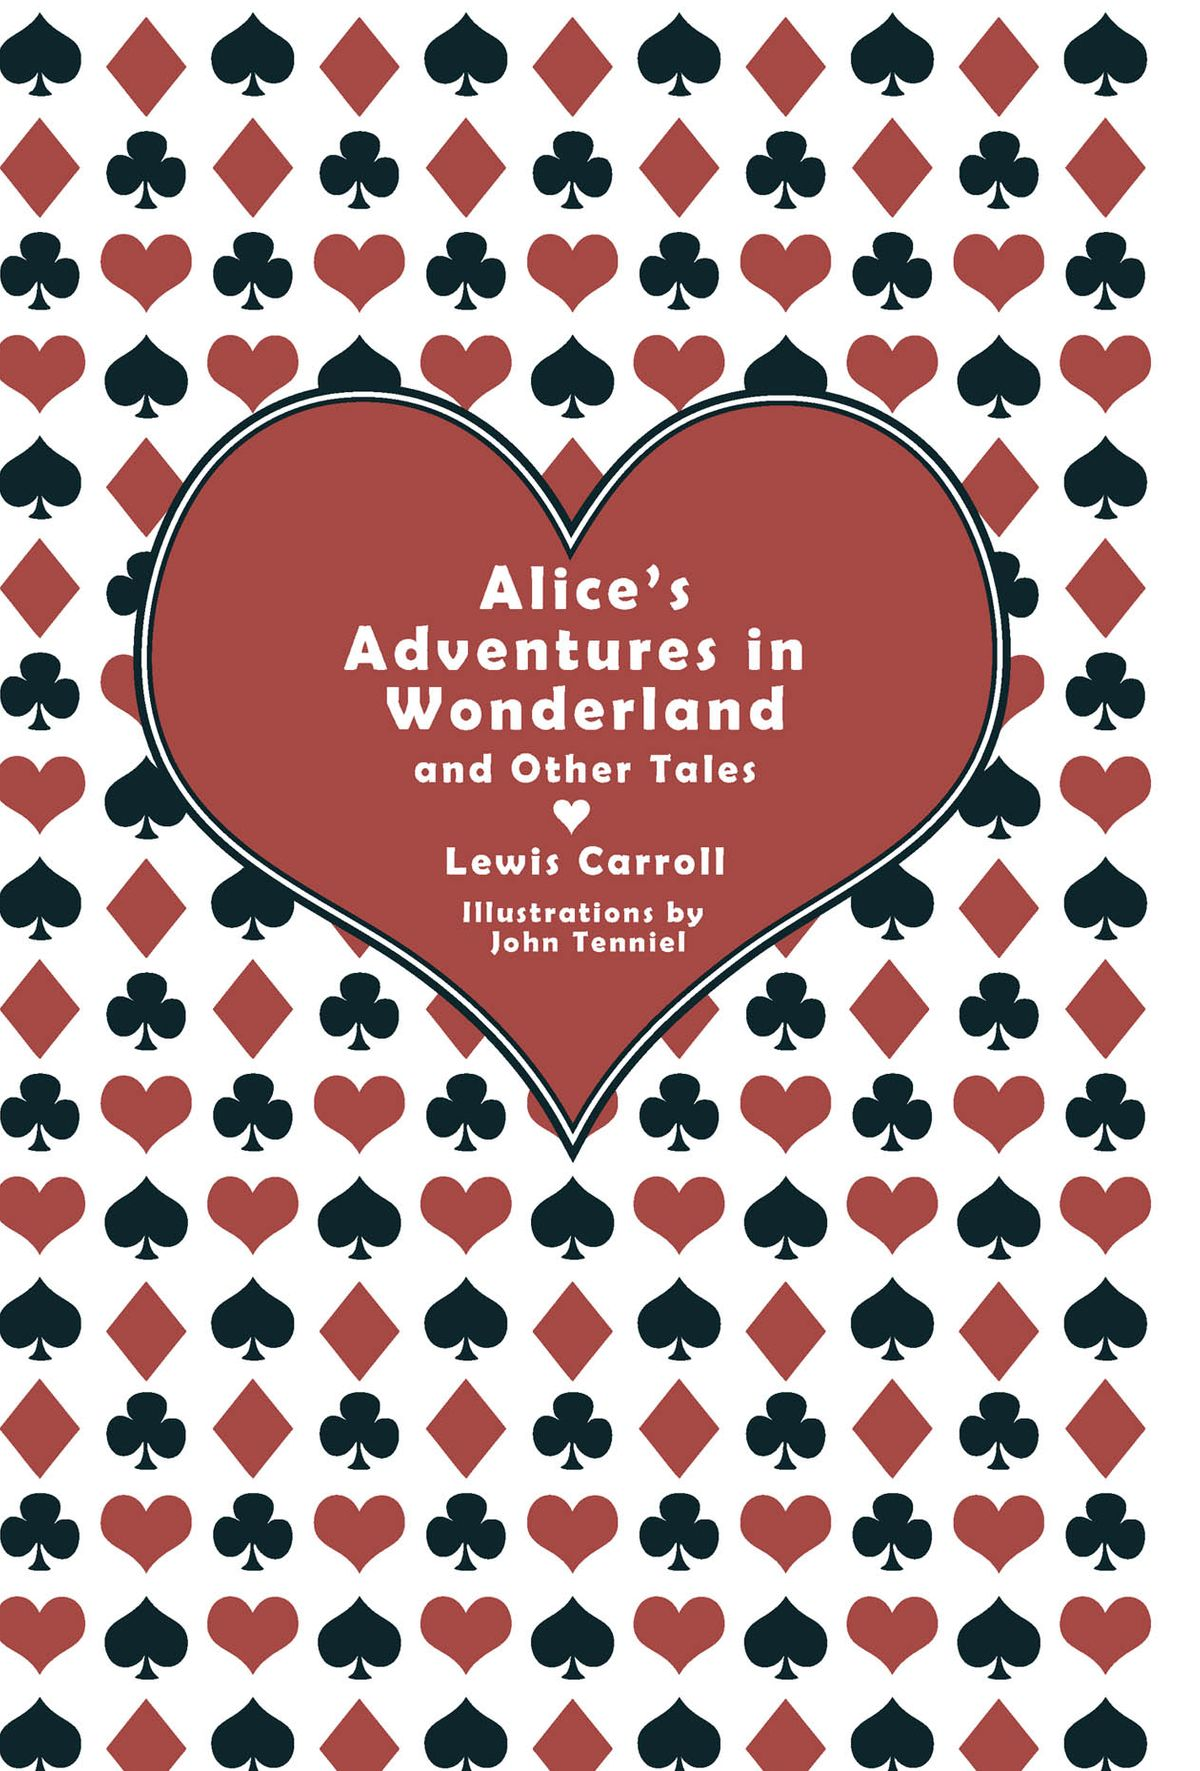 Alice's Adventures in Wonderland and the Complete Writings of Lewis Carroll (Knickerbocker Classics)